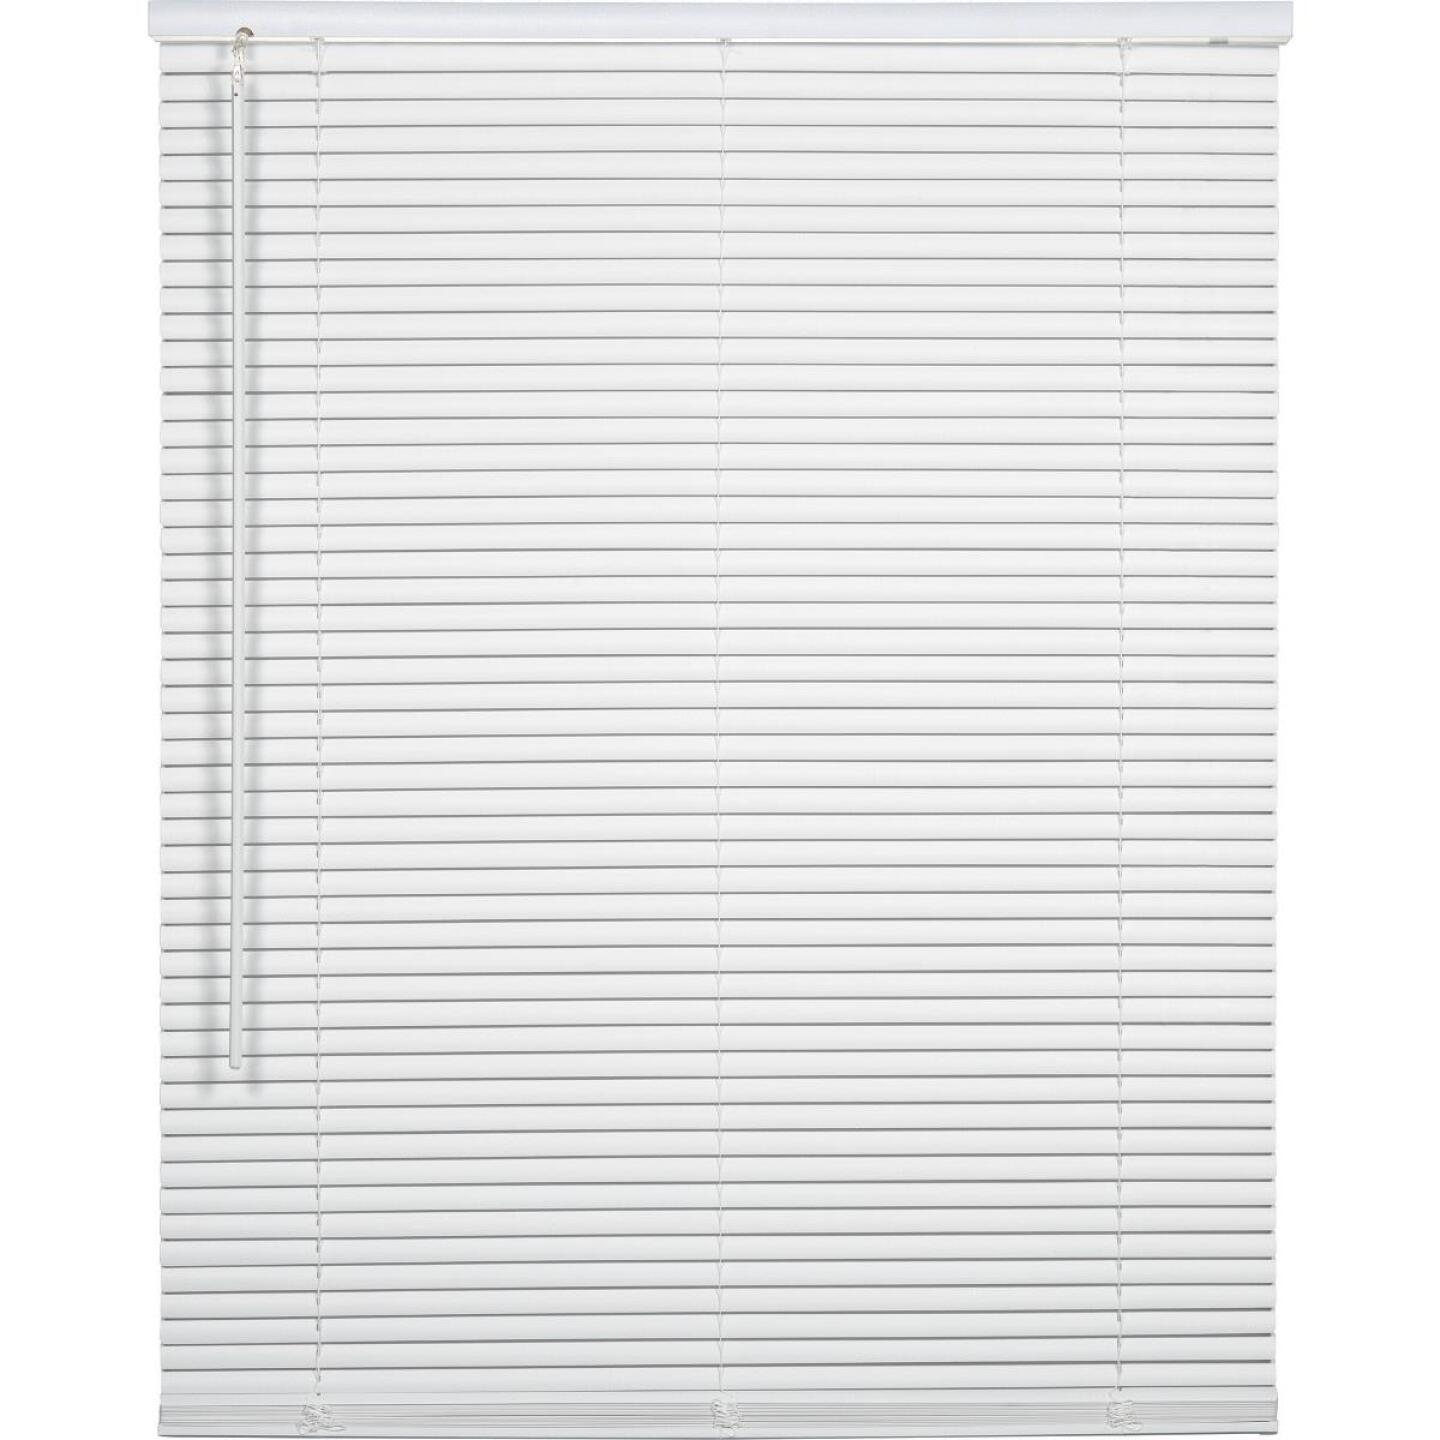 Home Impressions 26 In. x 72 In. x 1 In. White Vinyl Light Filtering Cordless Mini Blind Image 1